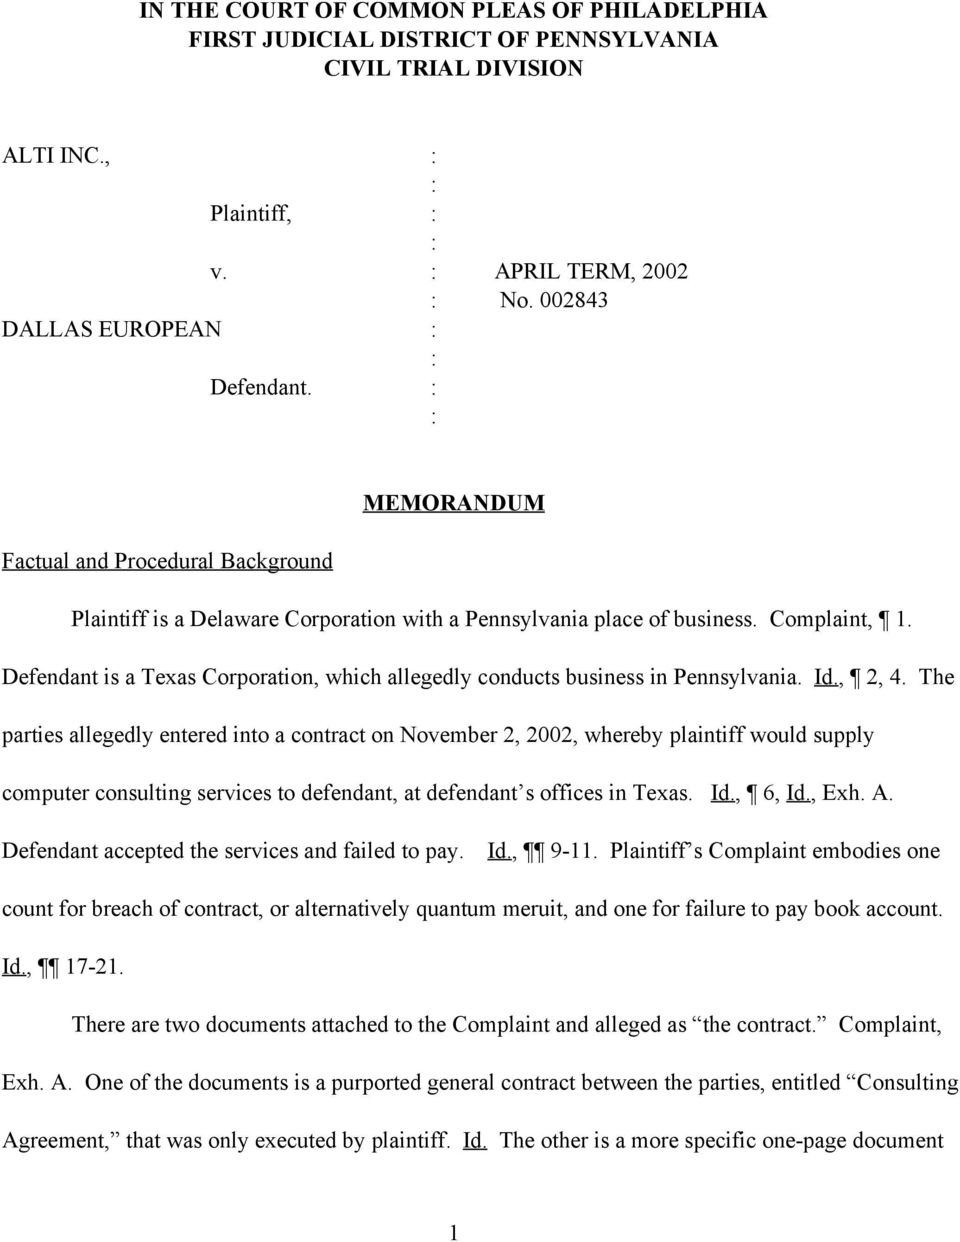 Defendant is a Texas Corporation, which allegedly conducts business in Pennsylvania. Id., 2, 4.